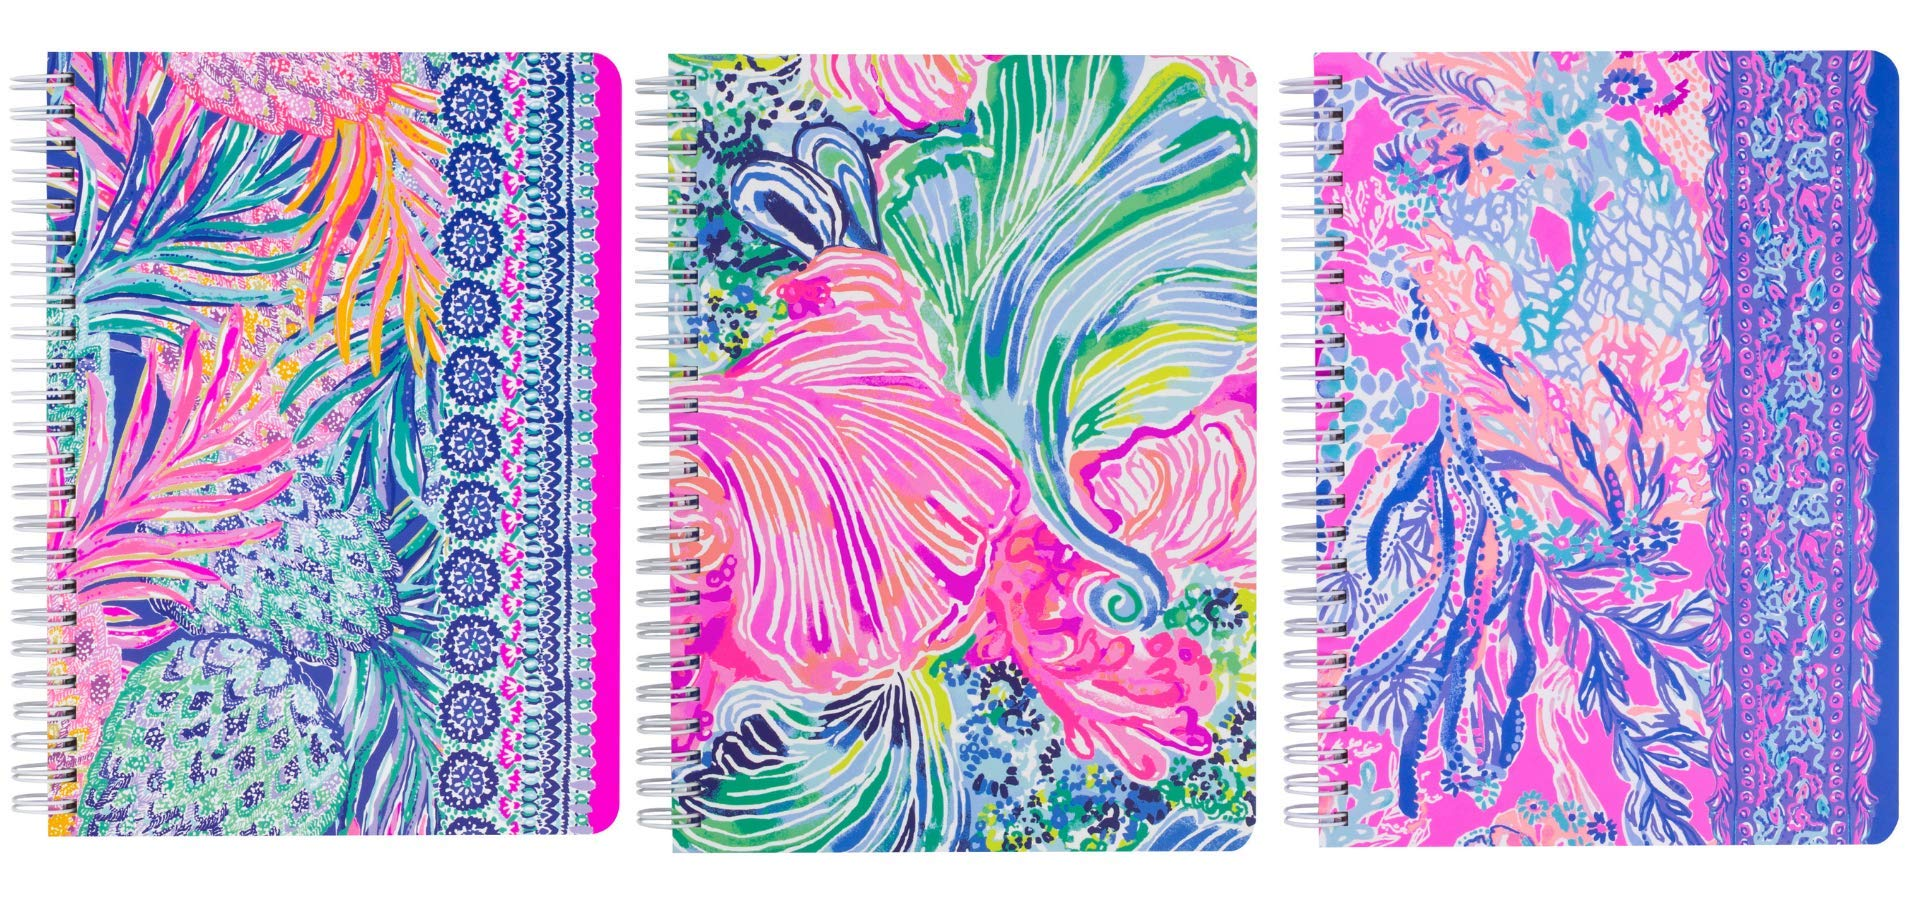 Lilly Pulitzer Set of 3 Mini Spiral Notebook Set, 8.25'' x 6.5'' with 160 pages (Aquadesiac, Gypset, Beach Please) by Lilly Pulitzer